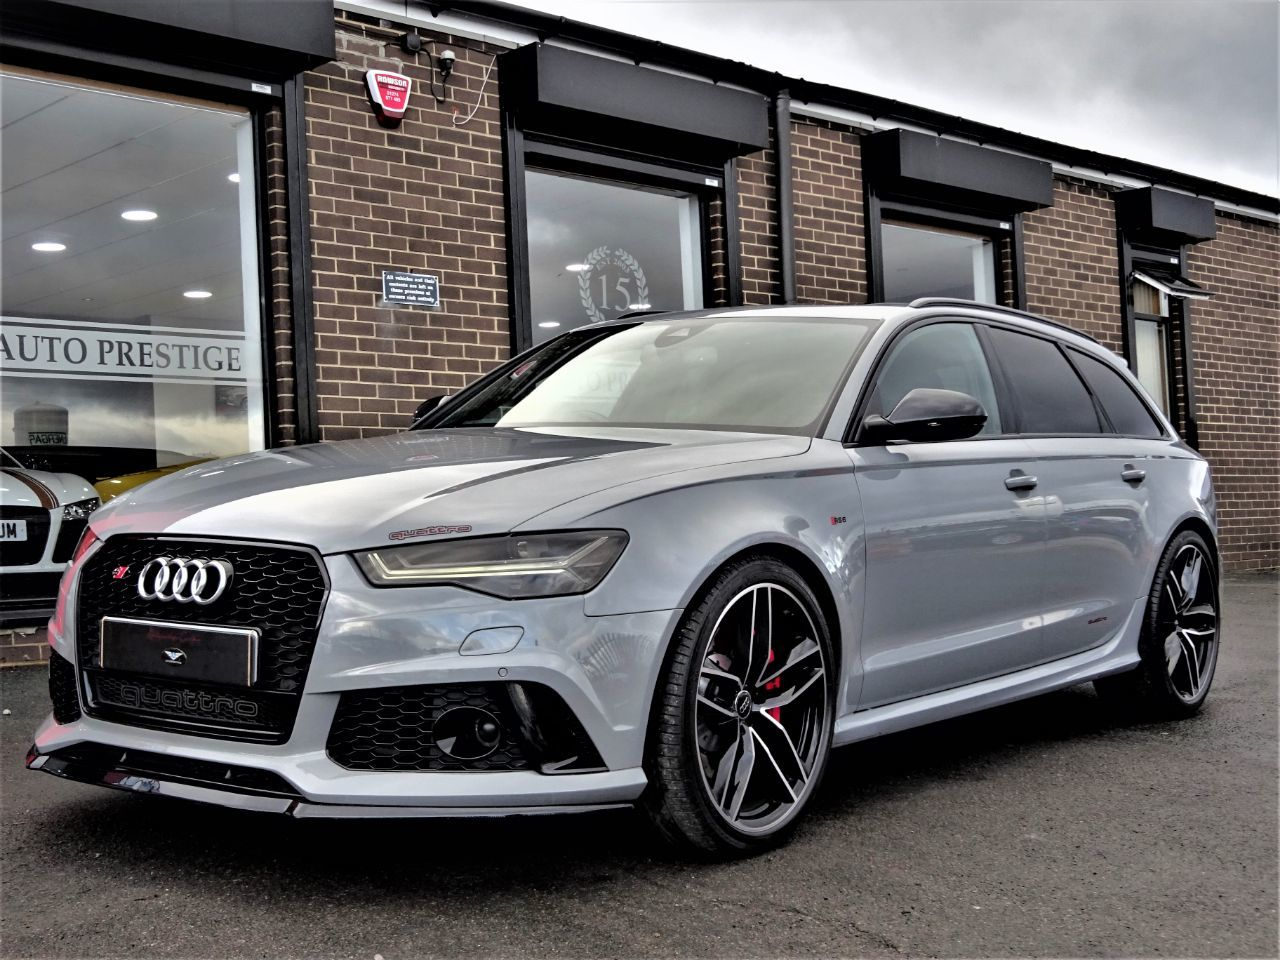 Audi RS6 4.0T FSI Quattro NARDO GREY 65 REG MASSIVE SPECIFICATION AUDI WARRANTY 1 OWNER DVD SYSTEM Estate Petrol Nardo Grey at Autoprestige Bradford